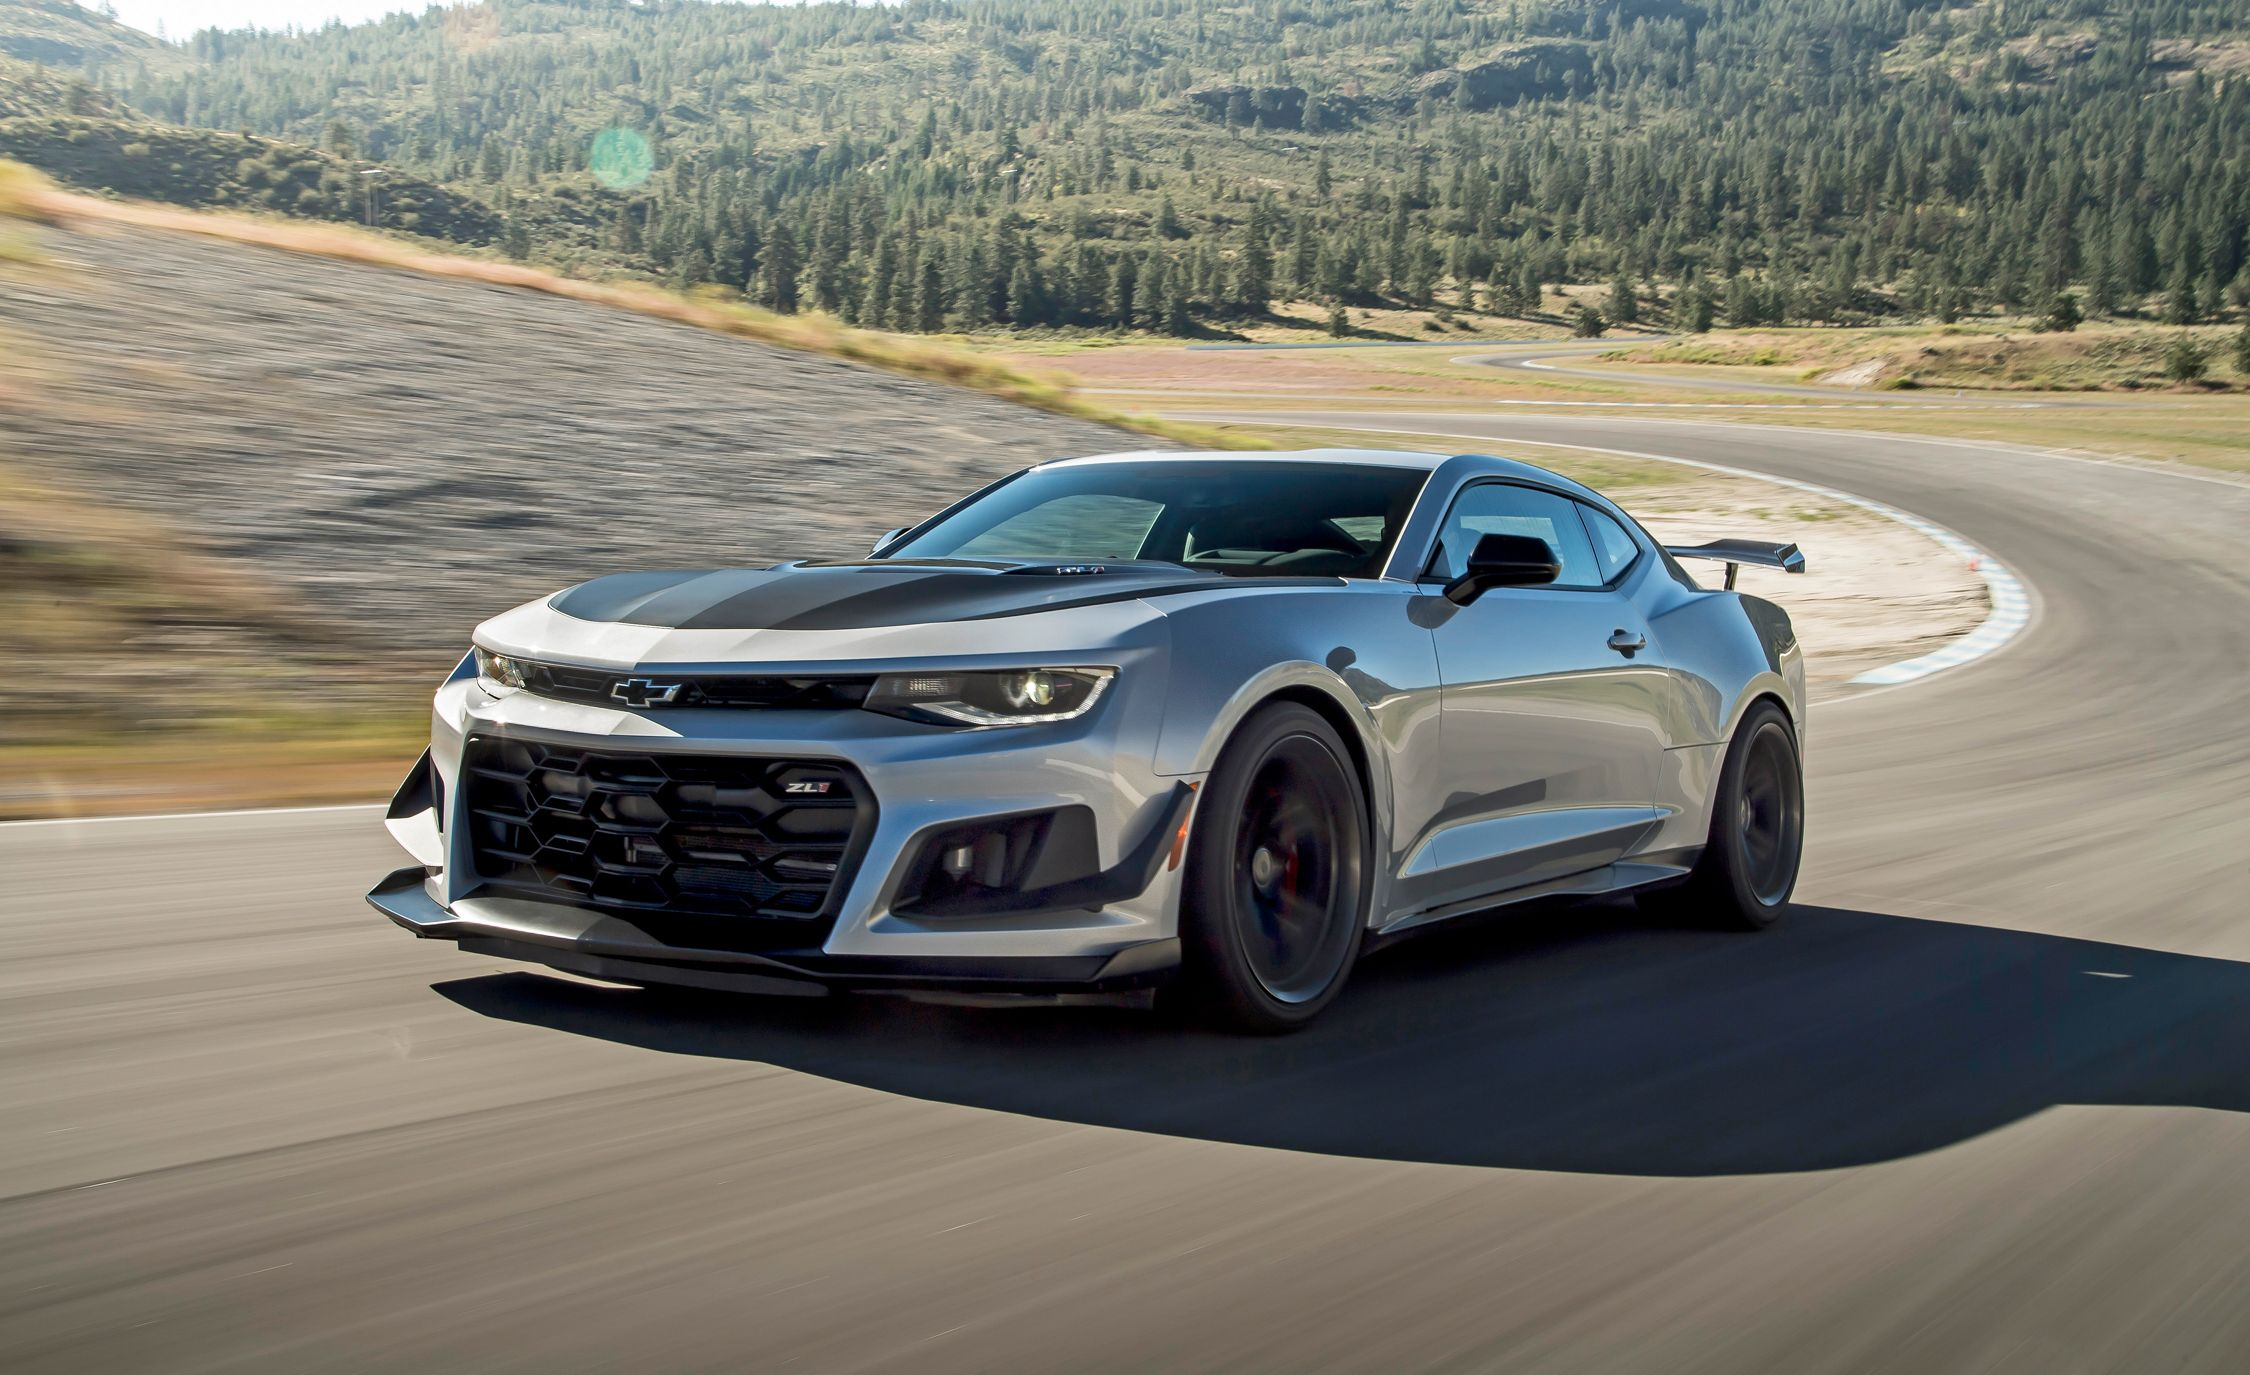 2018 camaro zl1 le best new cars for 2018 chevrolet camaro zl1 reviews price photos voltagebd Image collections